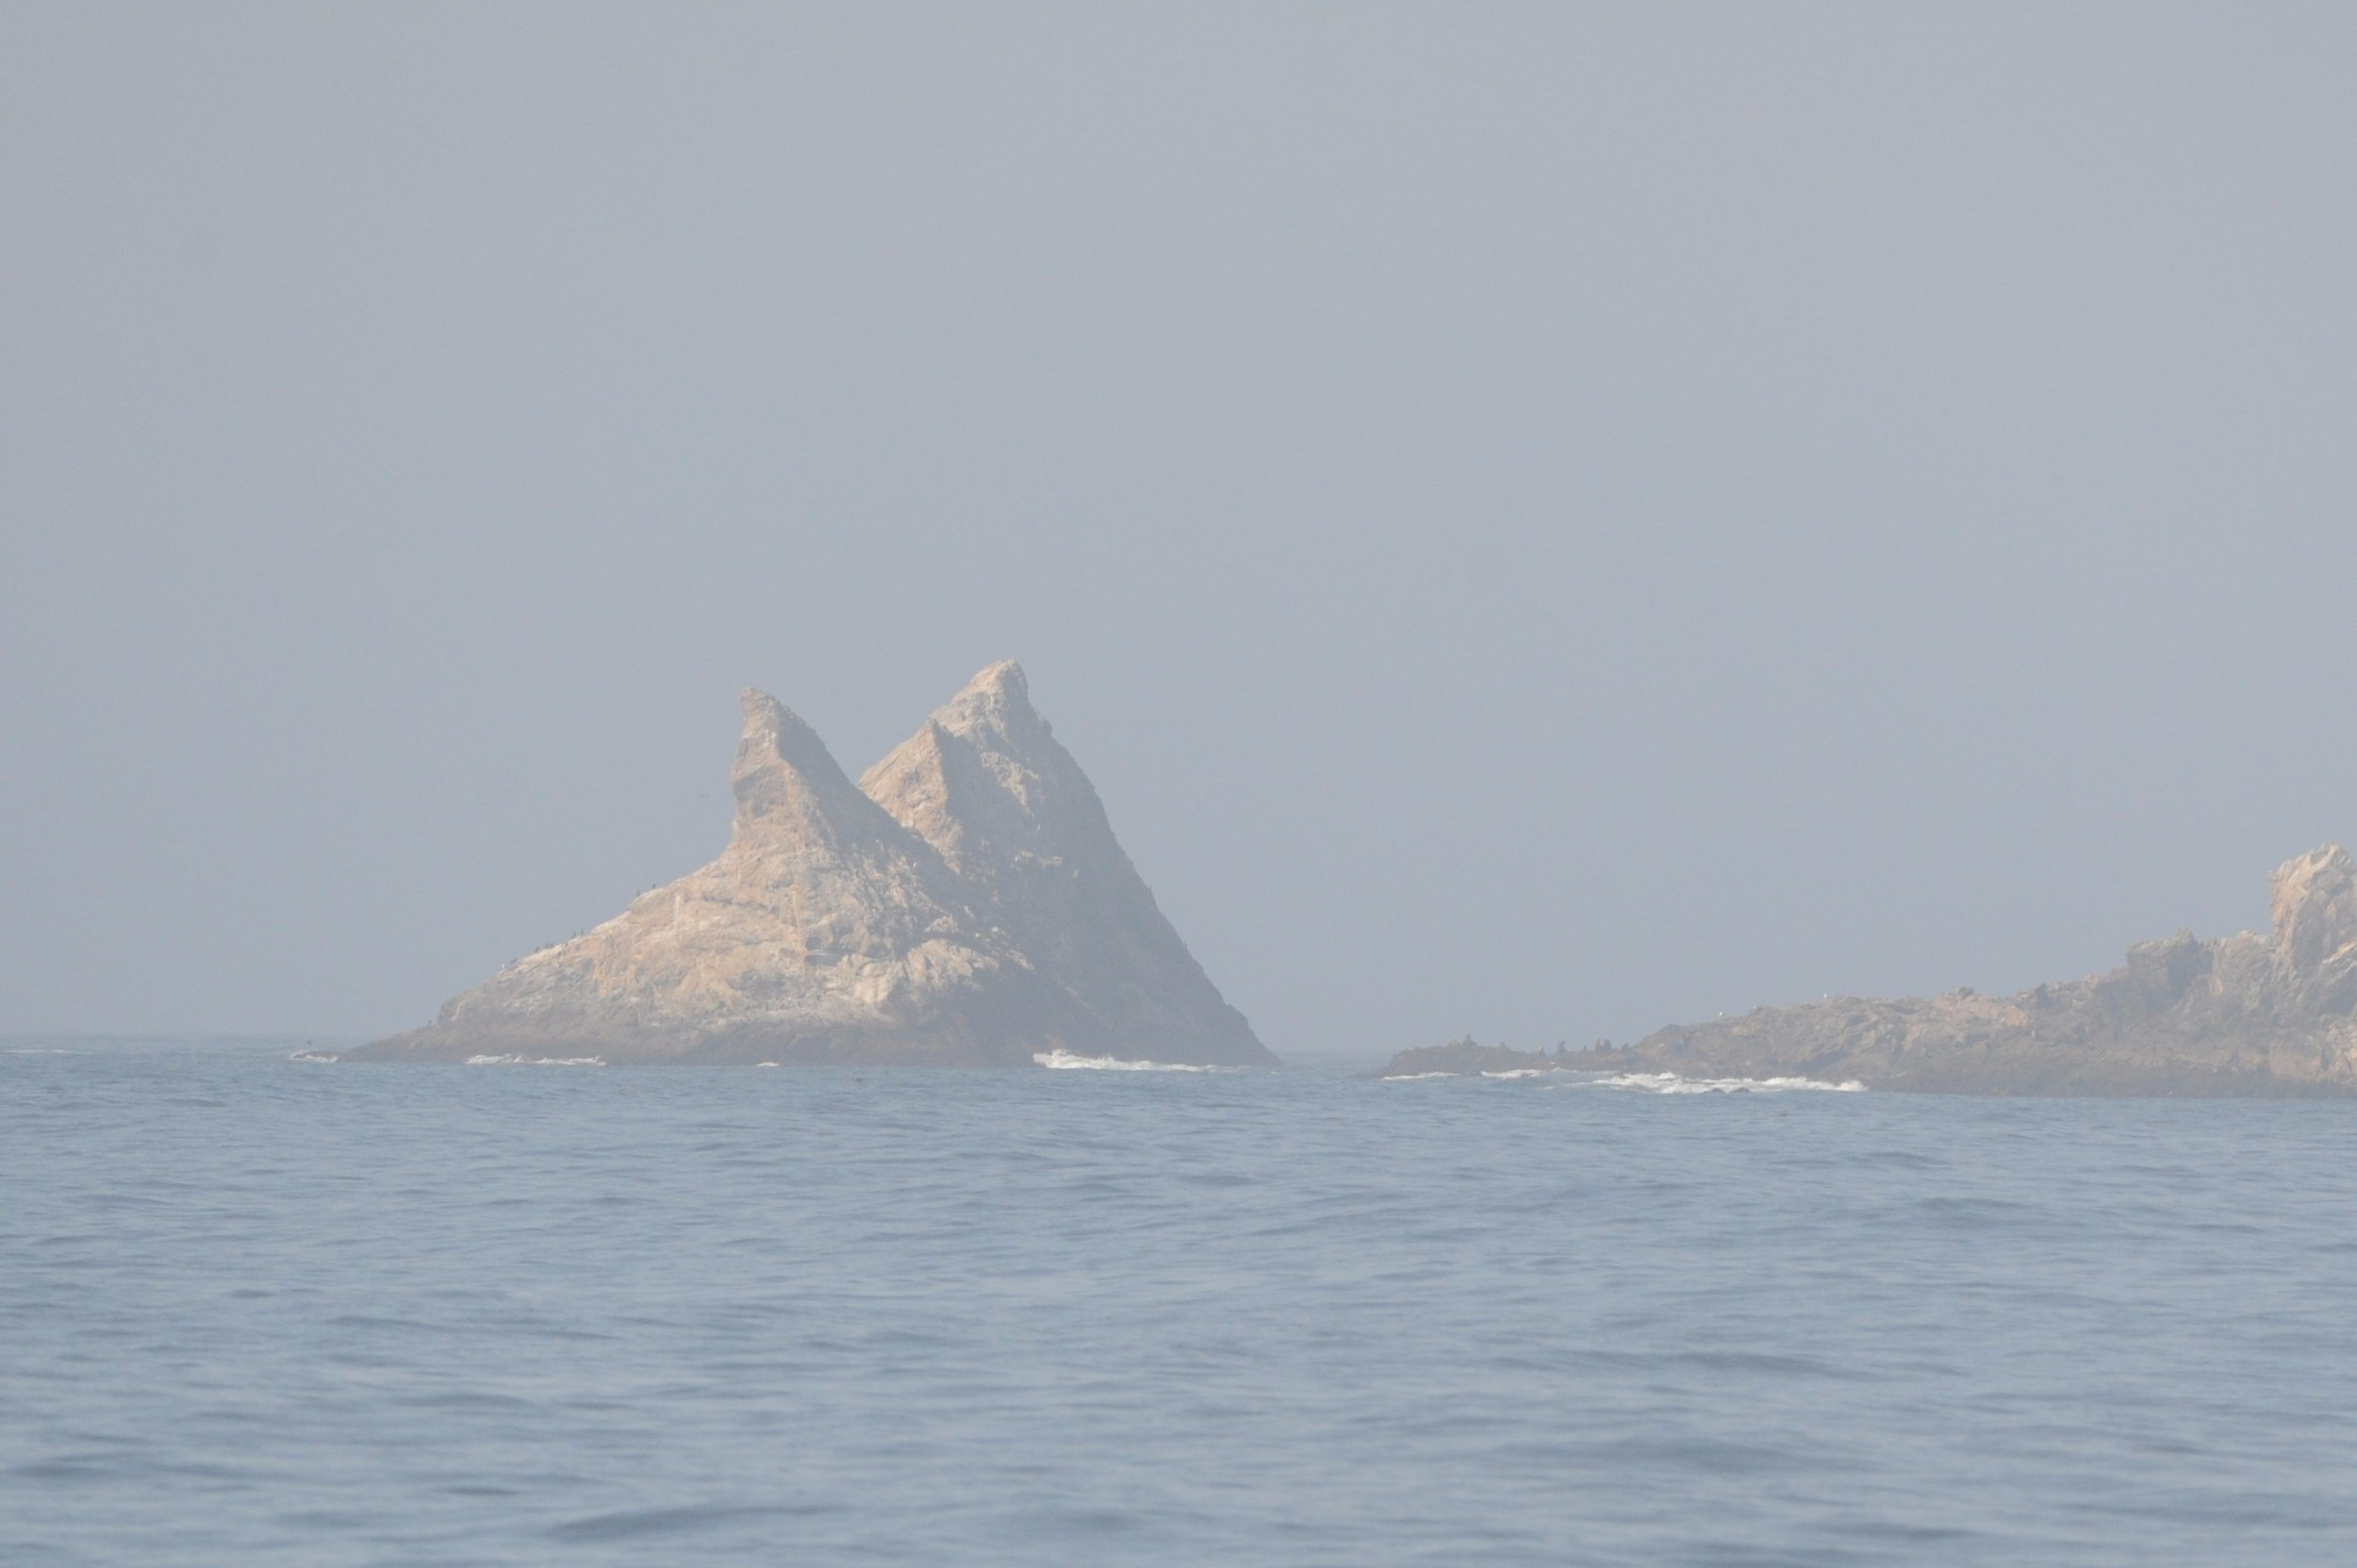 Saddle Rock appearing out of the mist.